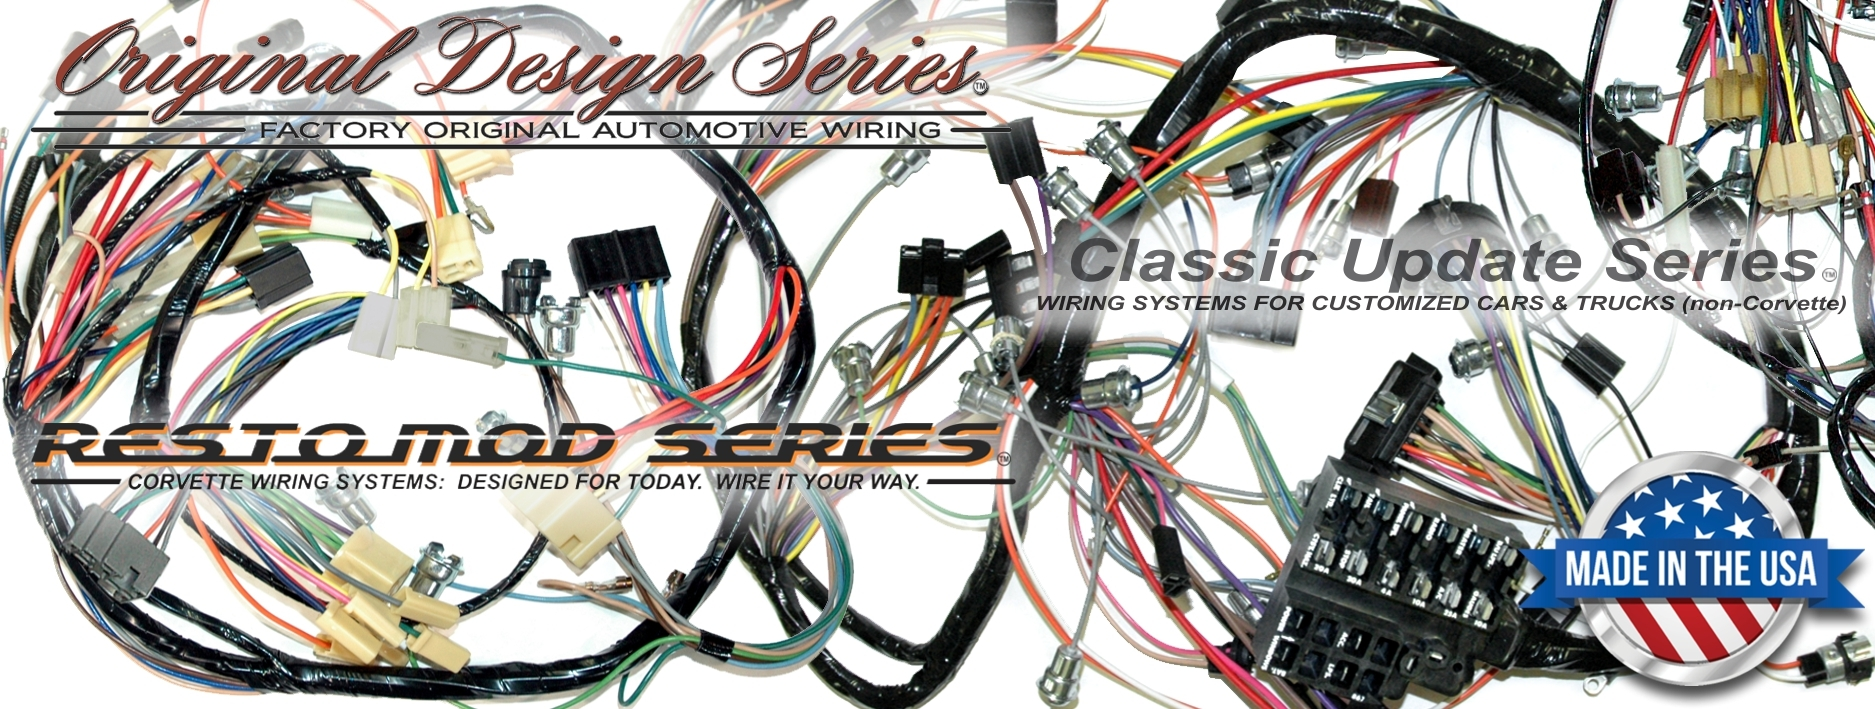 new header wiring_harnesses exact oem reproduction wiring harnesses and restomod wiring Wiring Harness Diagram at bayanpartner.co